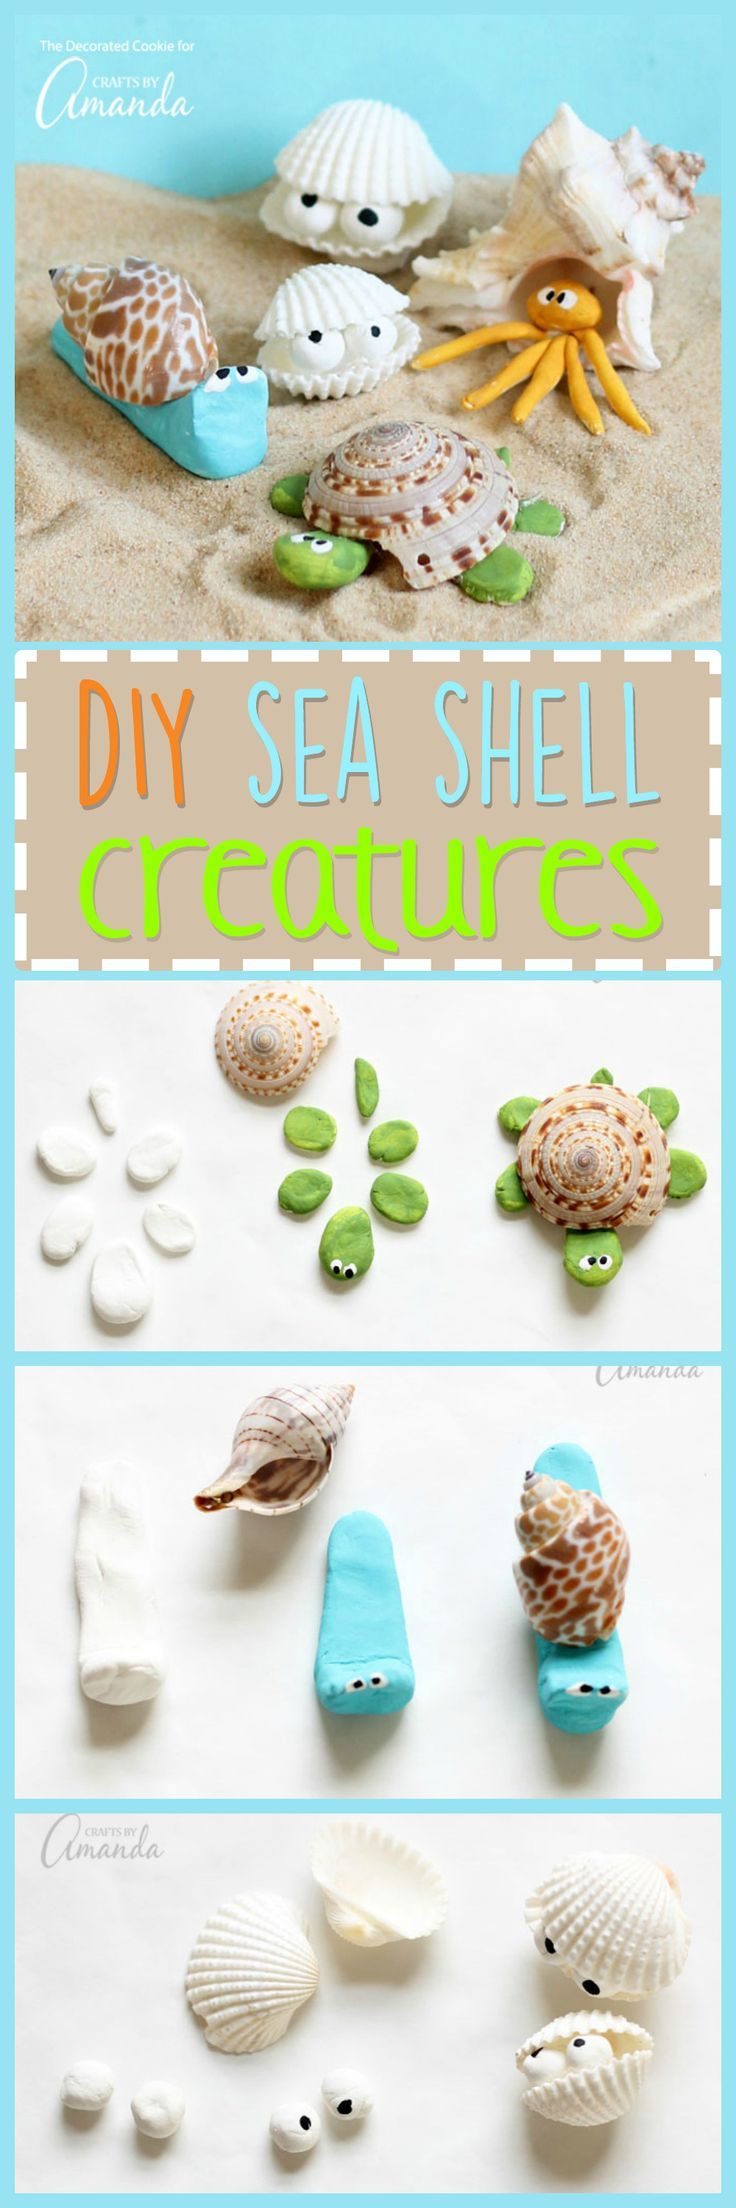 These sea shell creatures are the perfect beach craft to tackle after collecting shells from your latest beach vacation. Make your own unique creature!